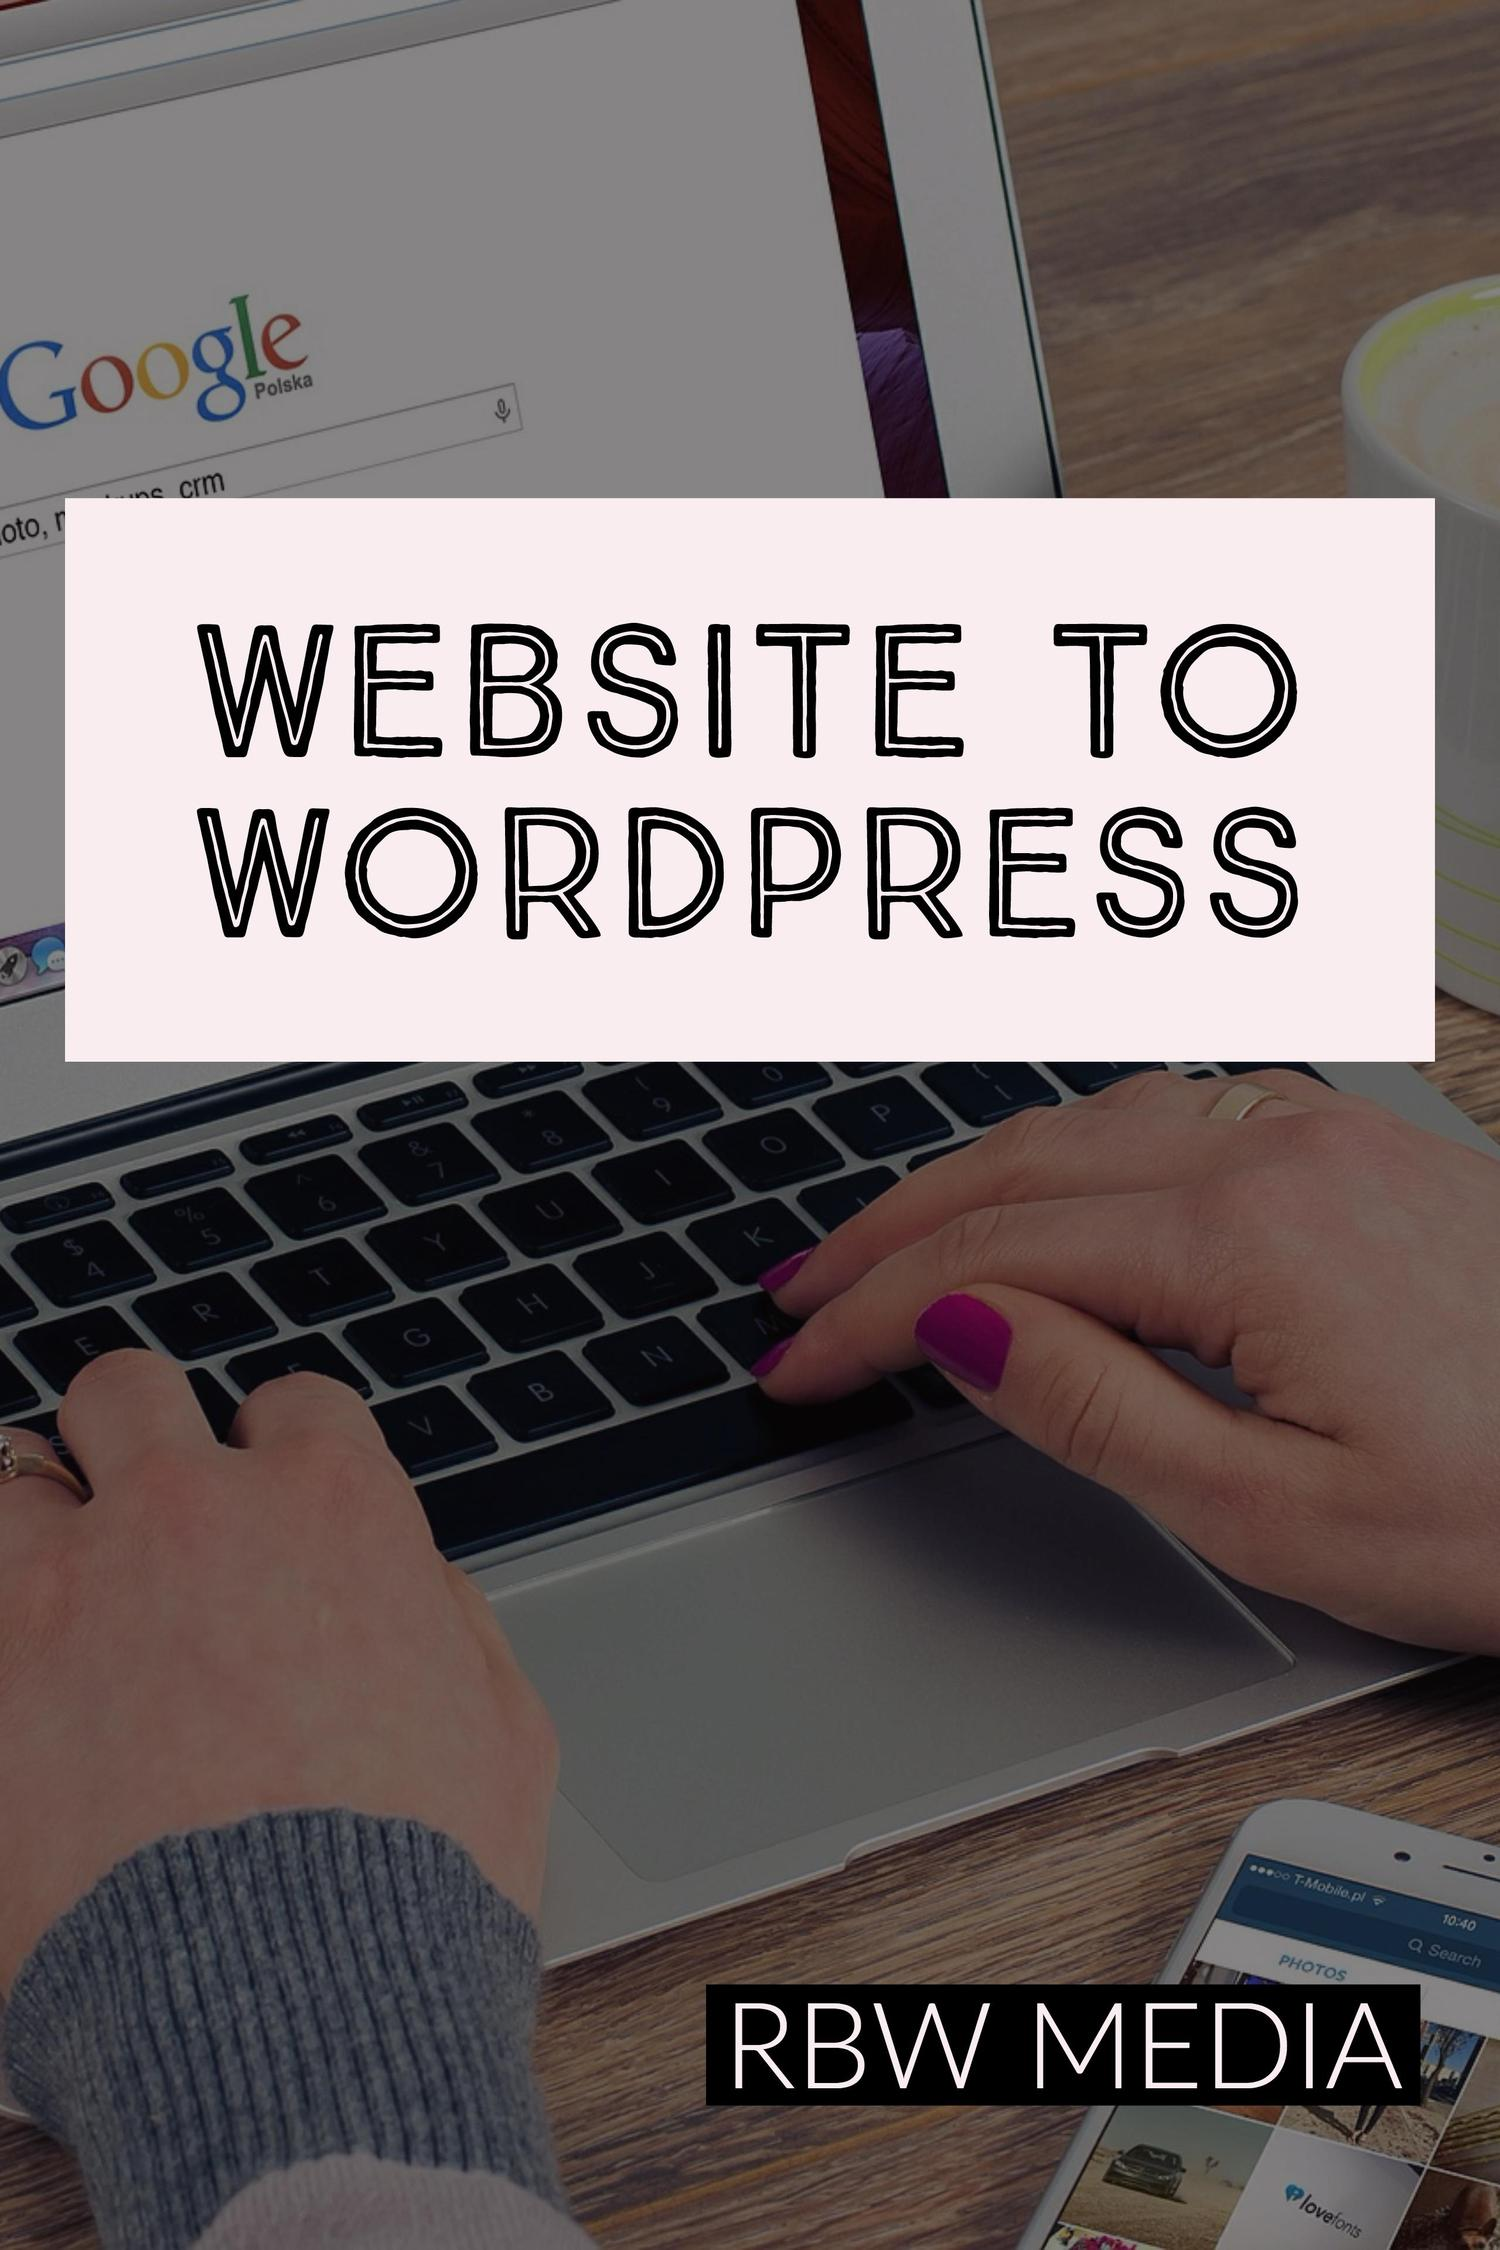 Migrate Your Current Website to WordPress by rbw_media - 102015